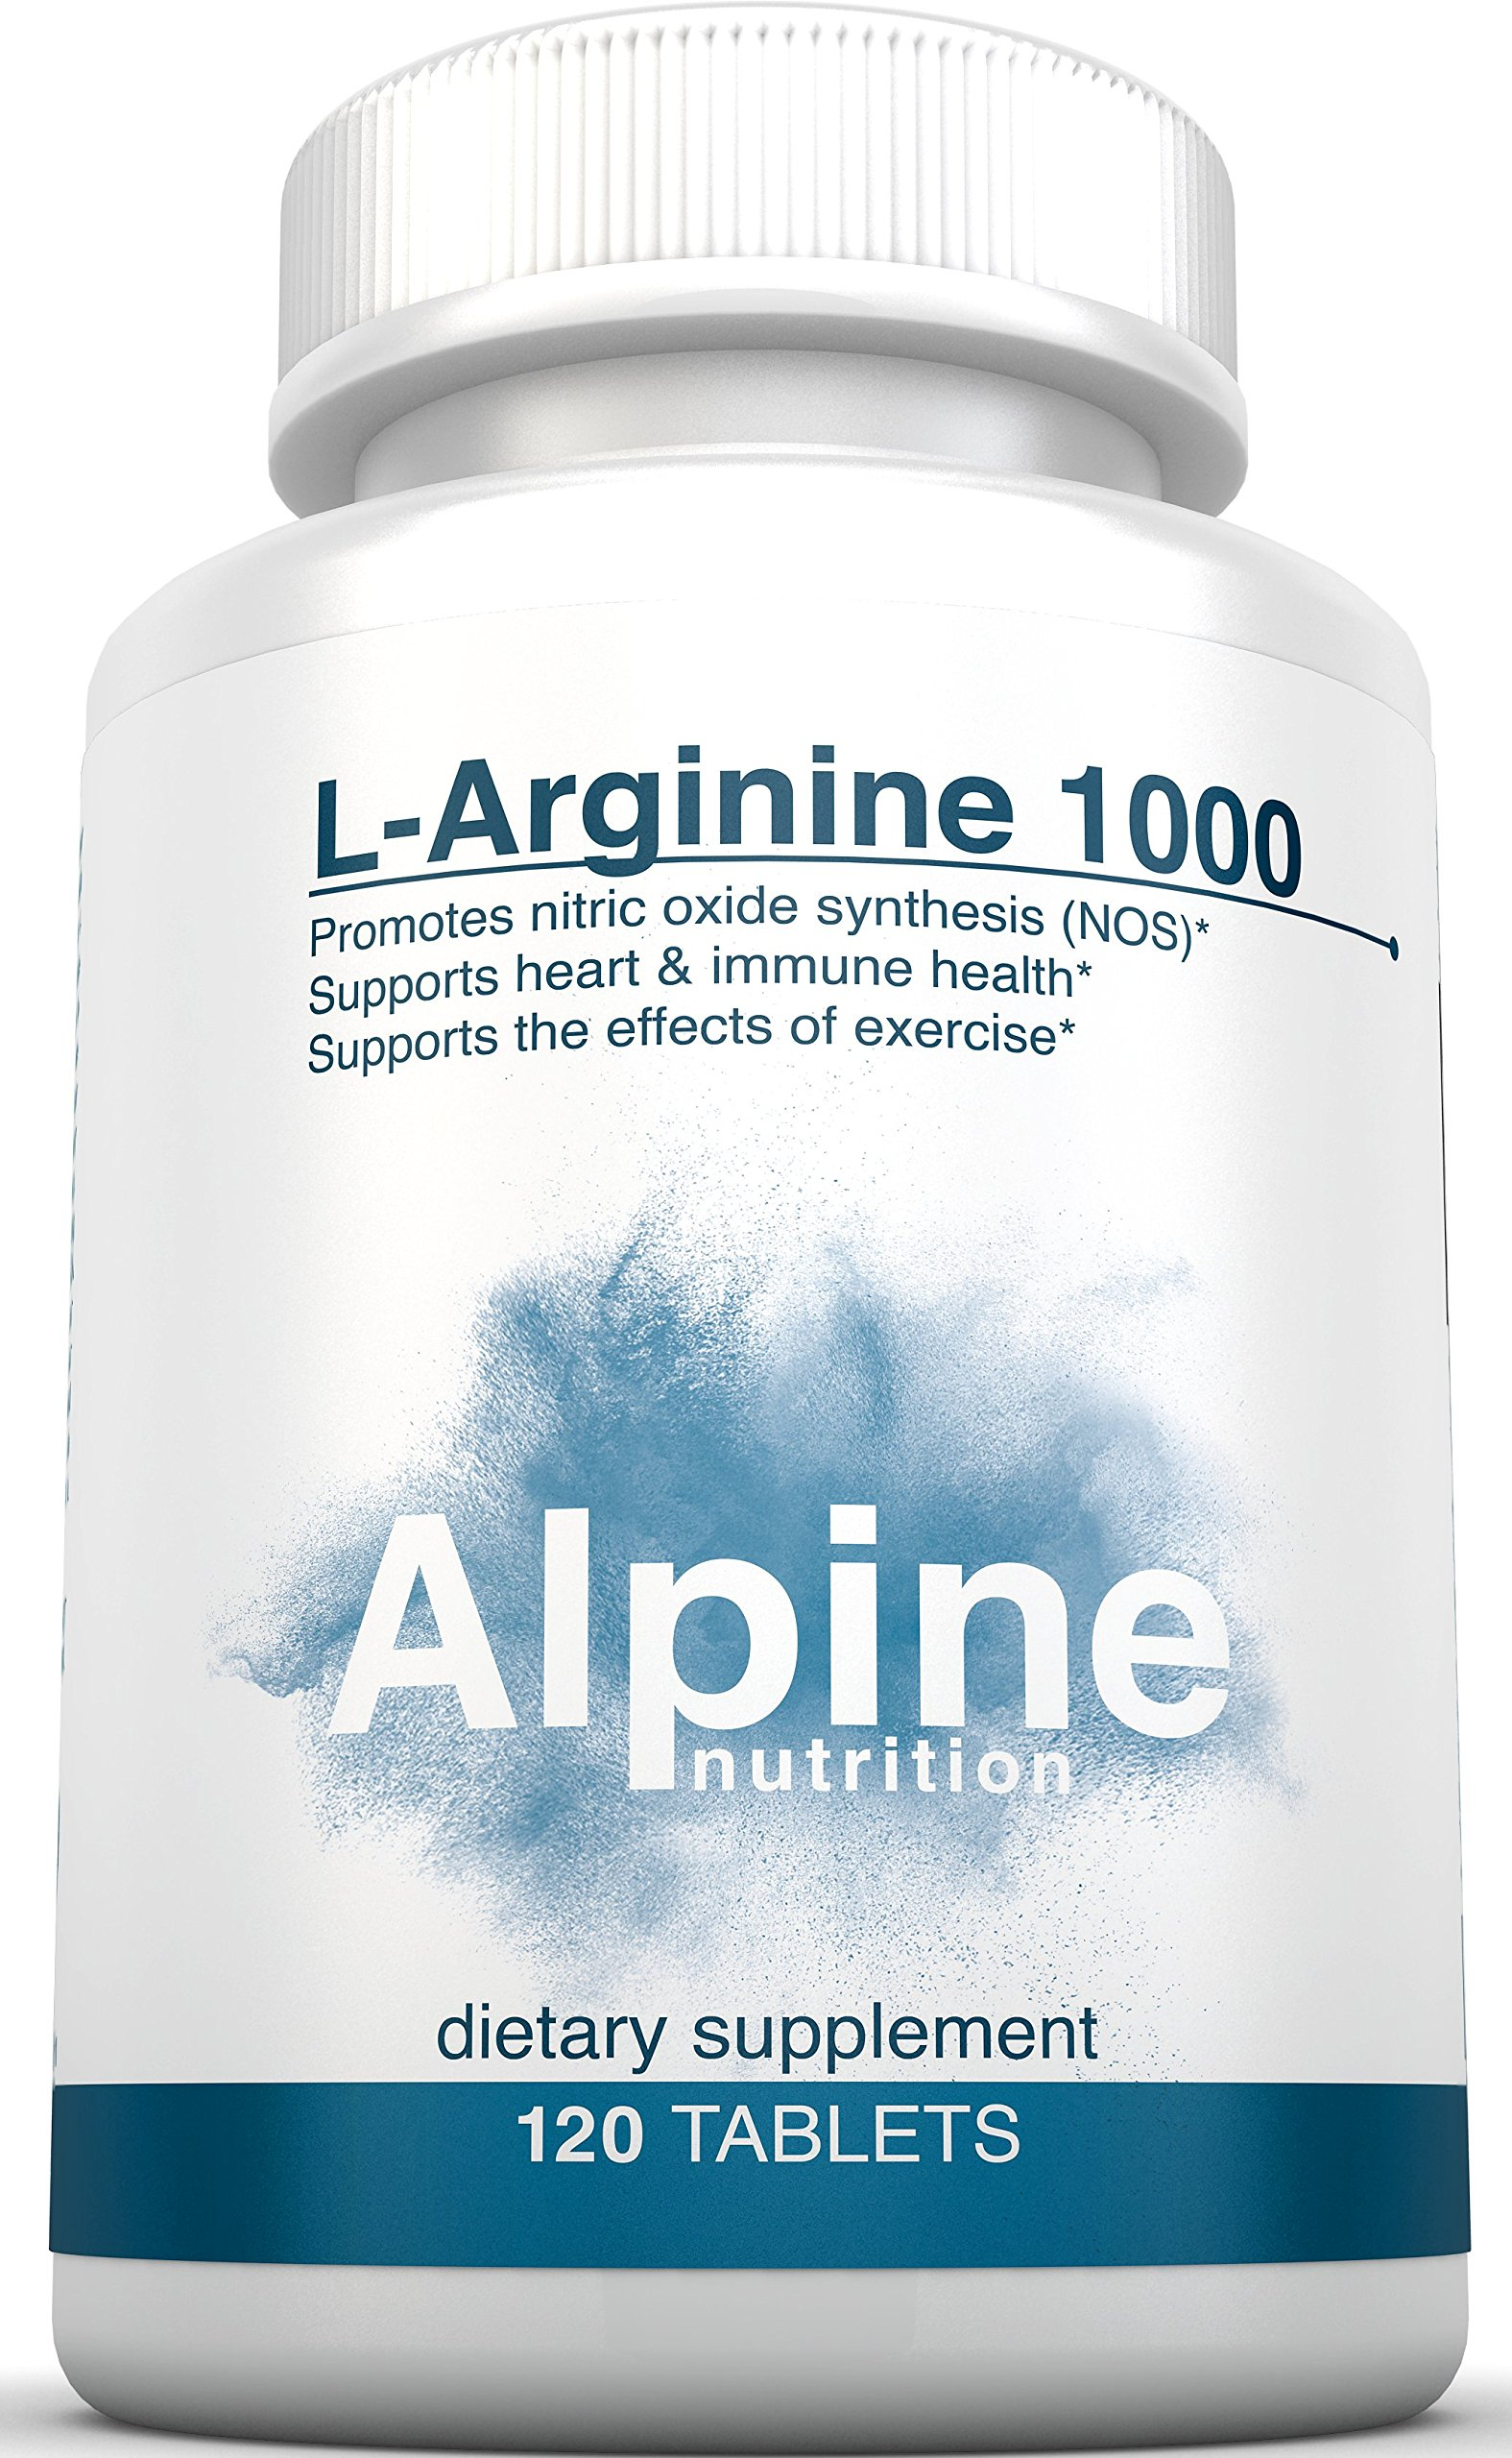 Alpine Nutrition L-Arginine 1000mg Tablets - NOS Nitric Oxide - 120 Tablets